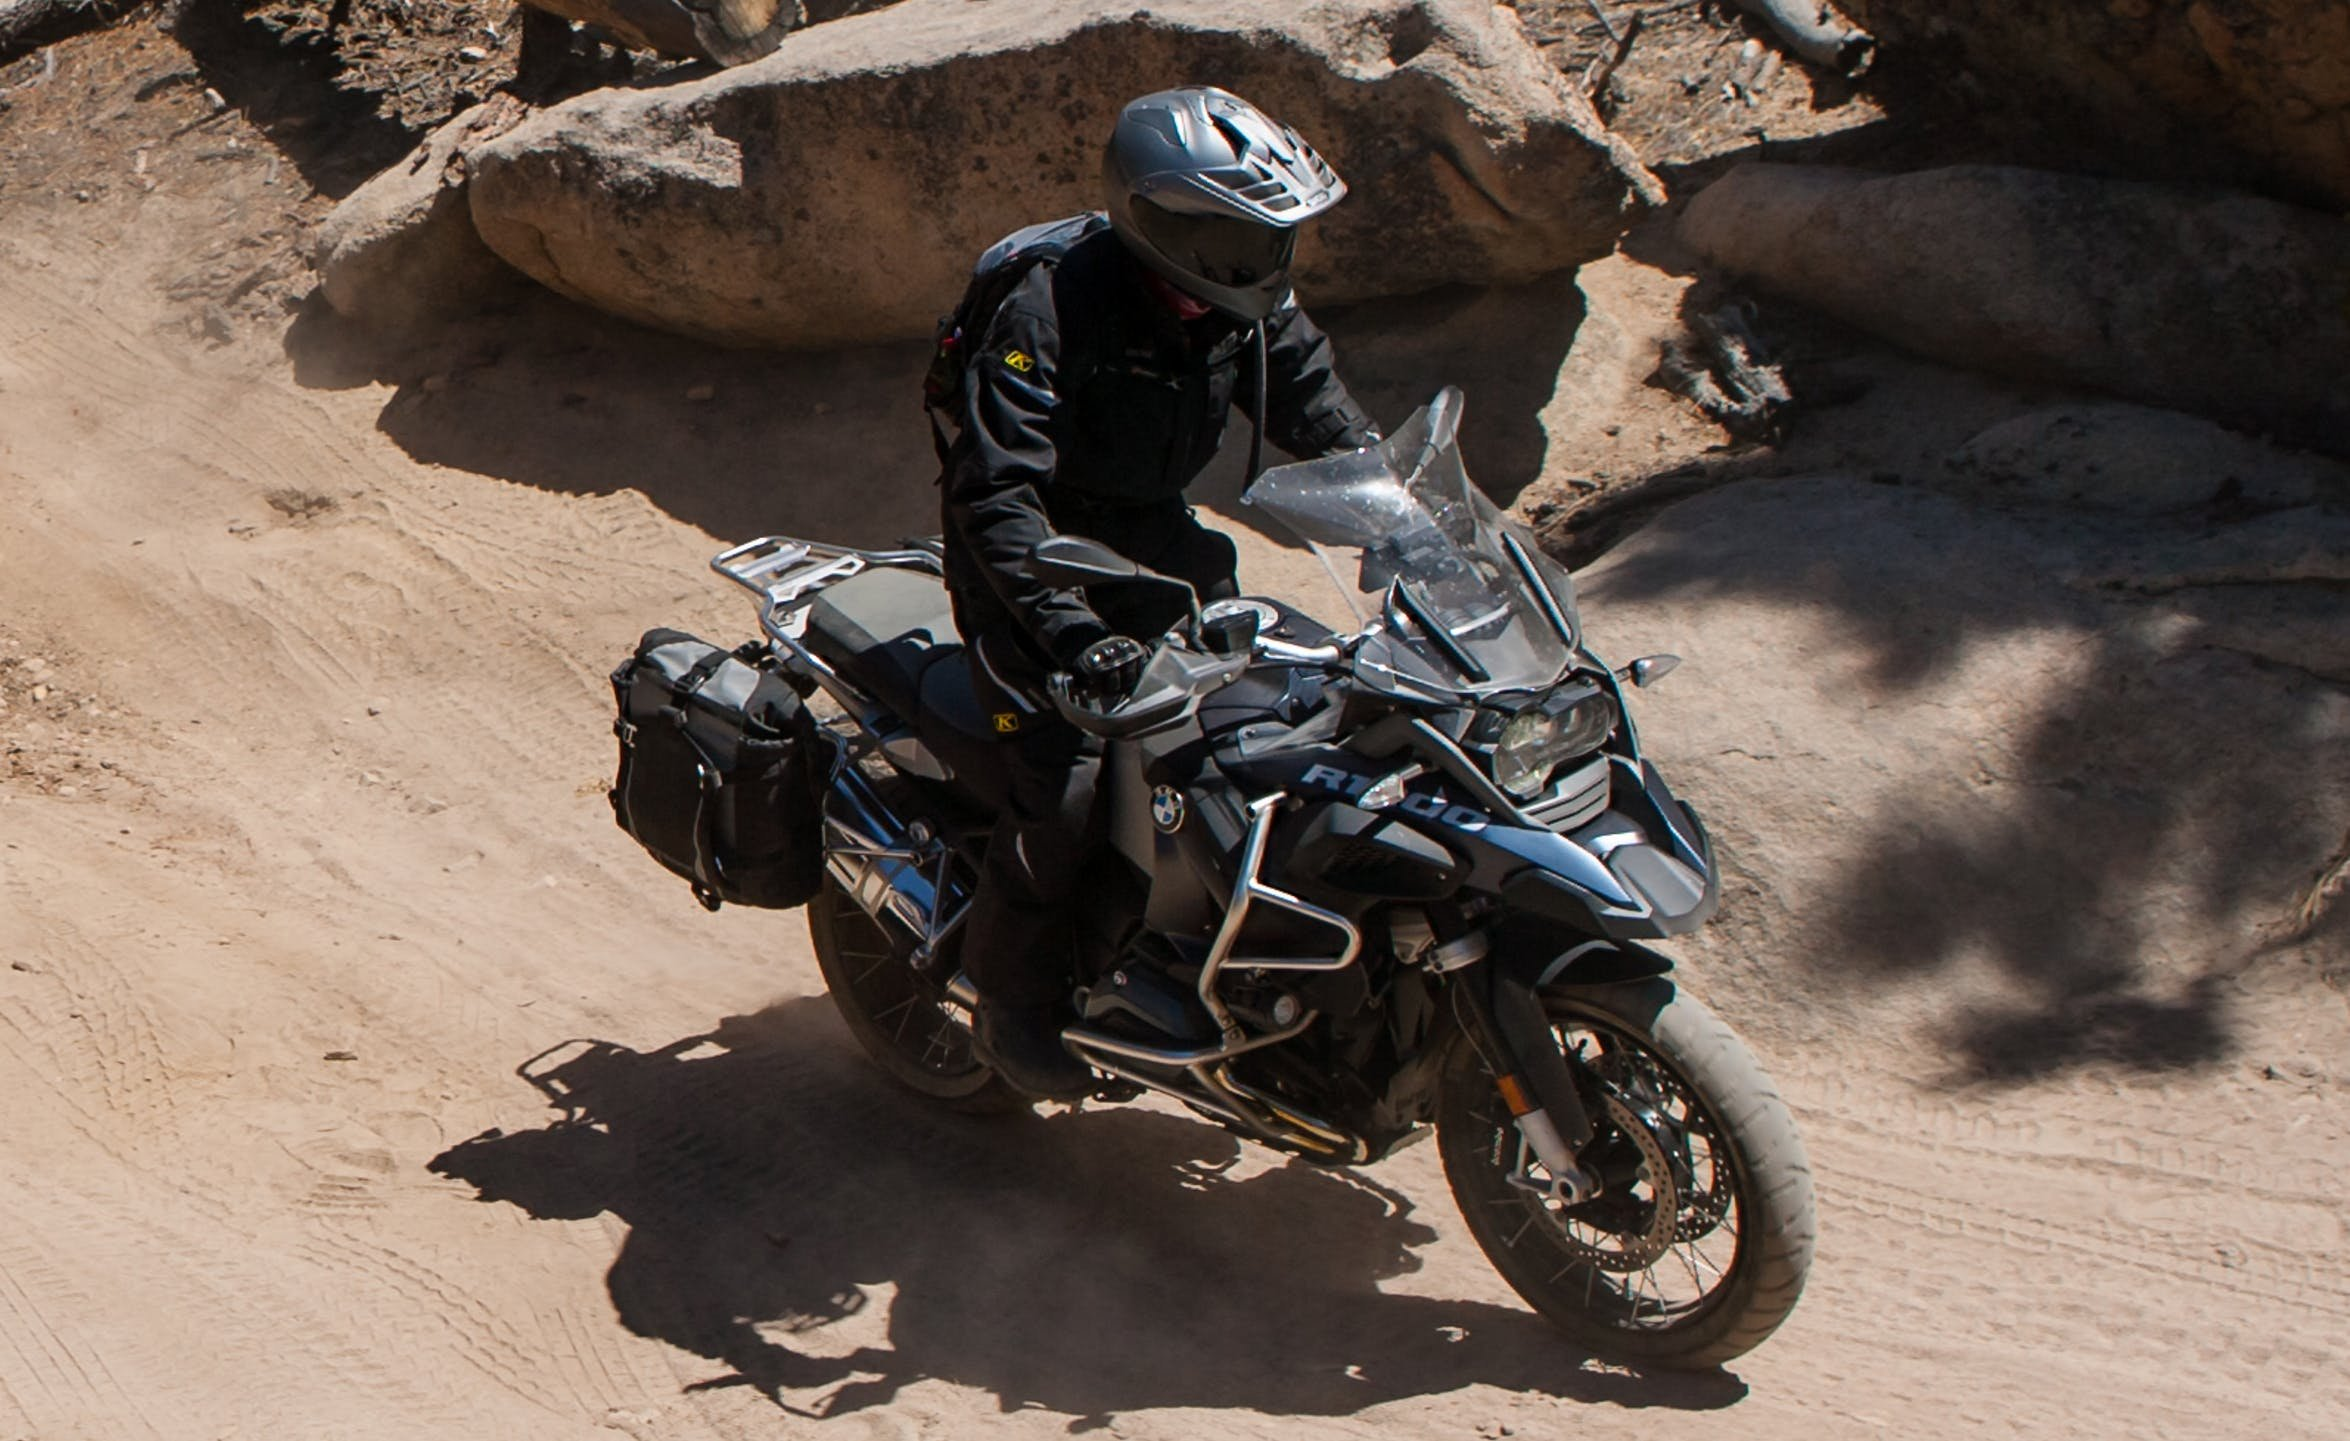 Adventure motorcycle rider on a BMW adventure motorcycle wearing all black protective gear